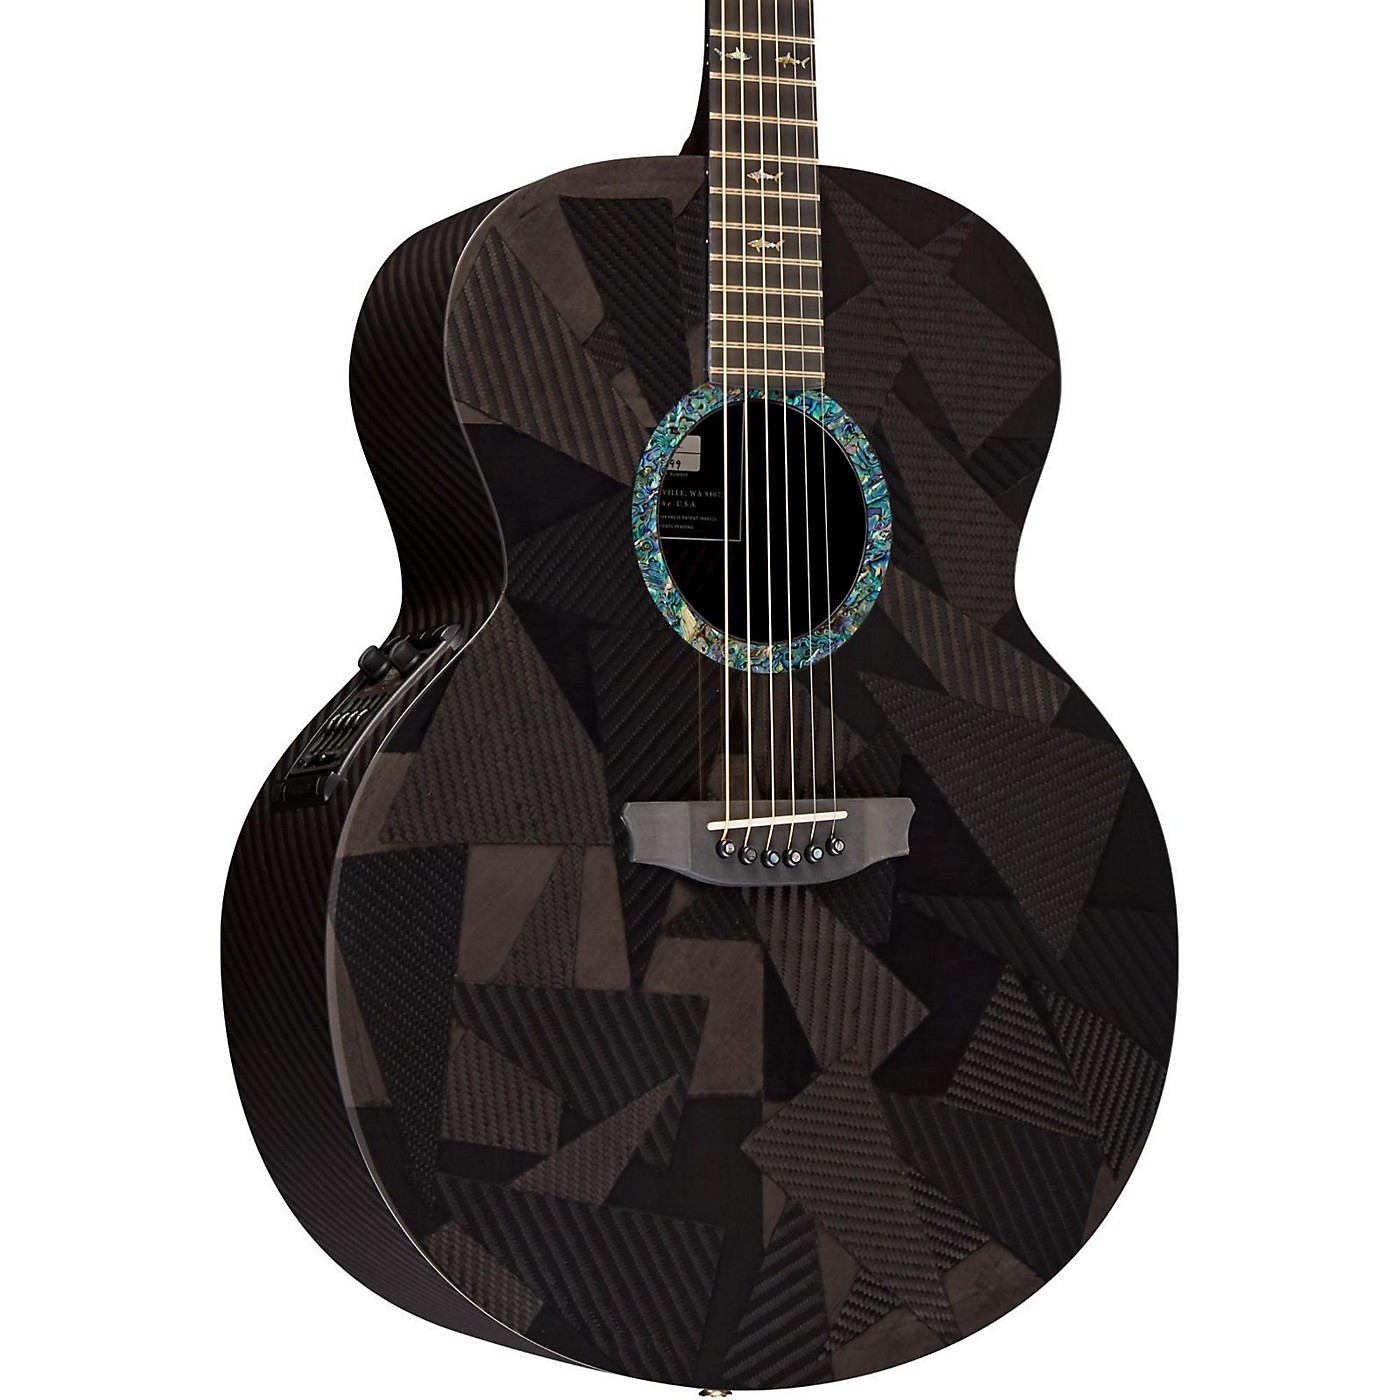 RainSong Black Ice Series BIJM1000N2 Graphite Acoustic-Electric Guitar thumbnail